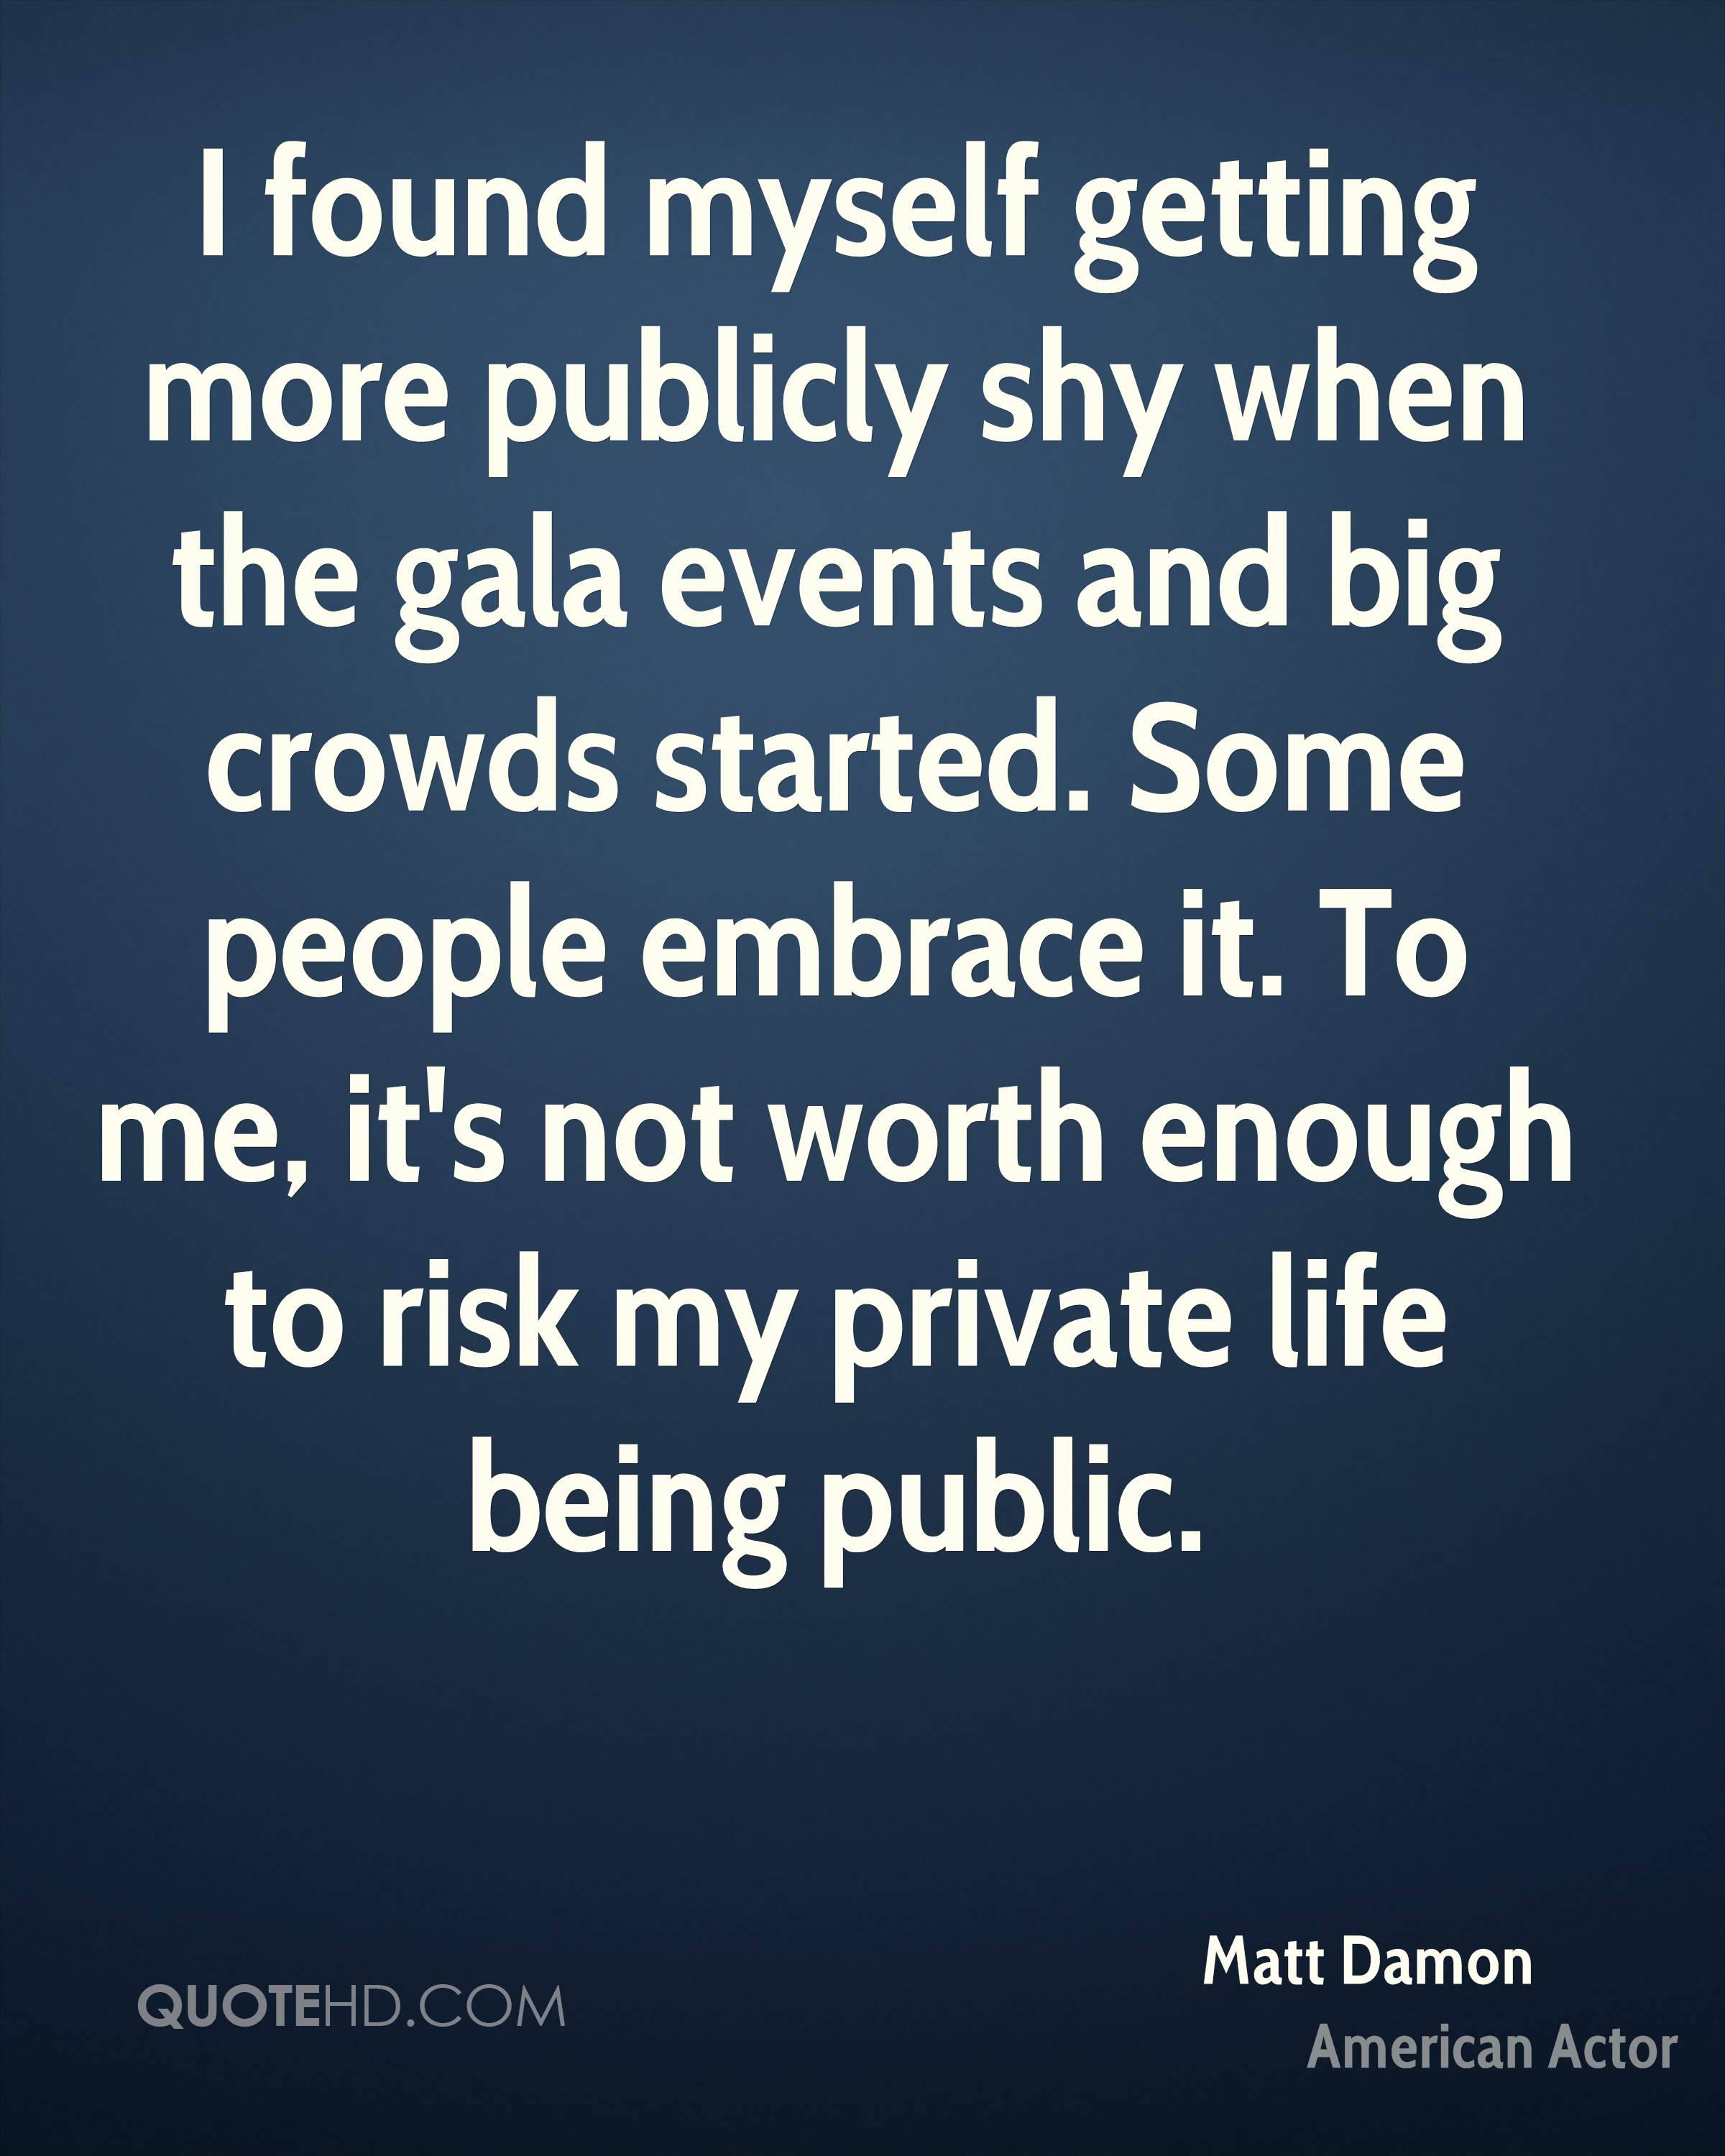 I found myself getting more publicly shy when the gala events and big crowds started. Some people embrace it. To me, it's not worth enough to risk my private life being public.